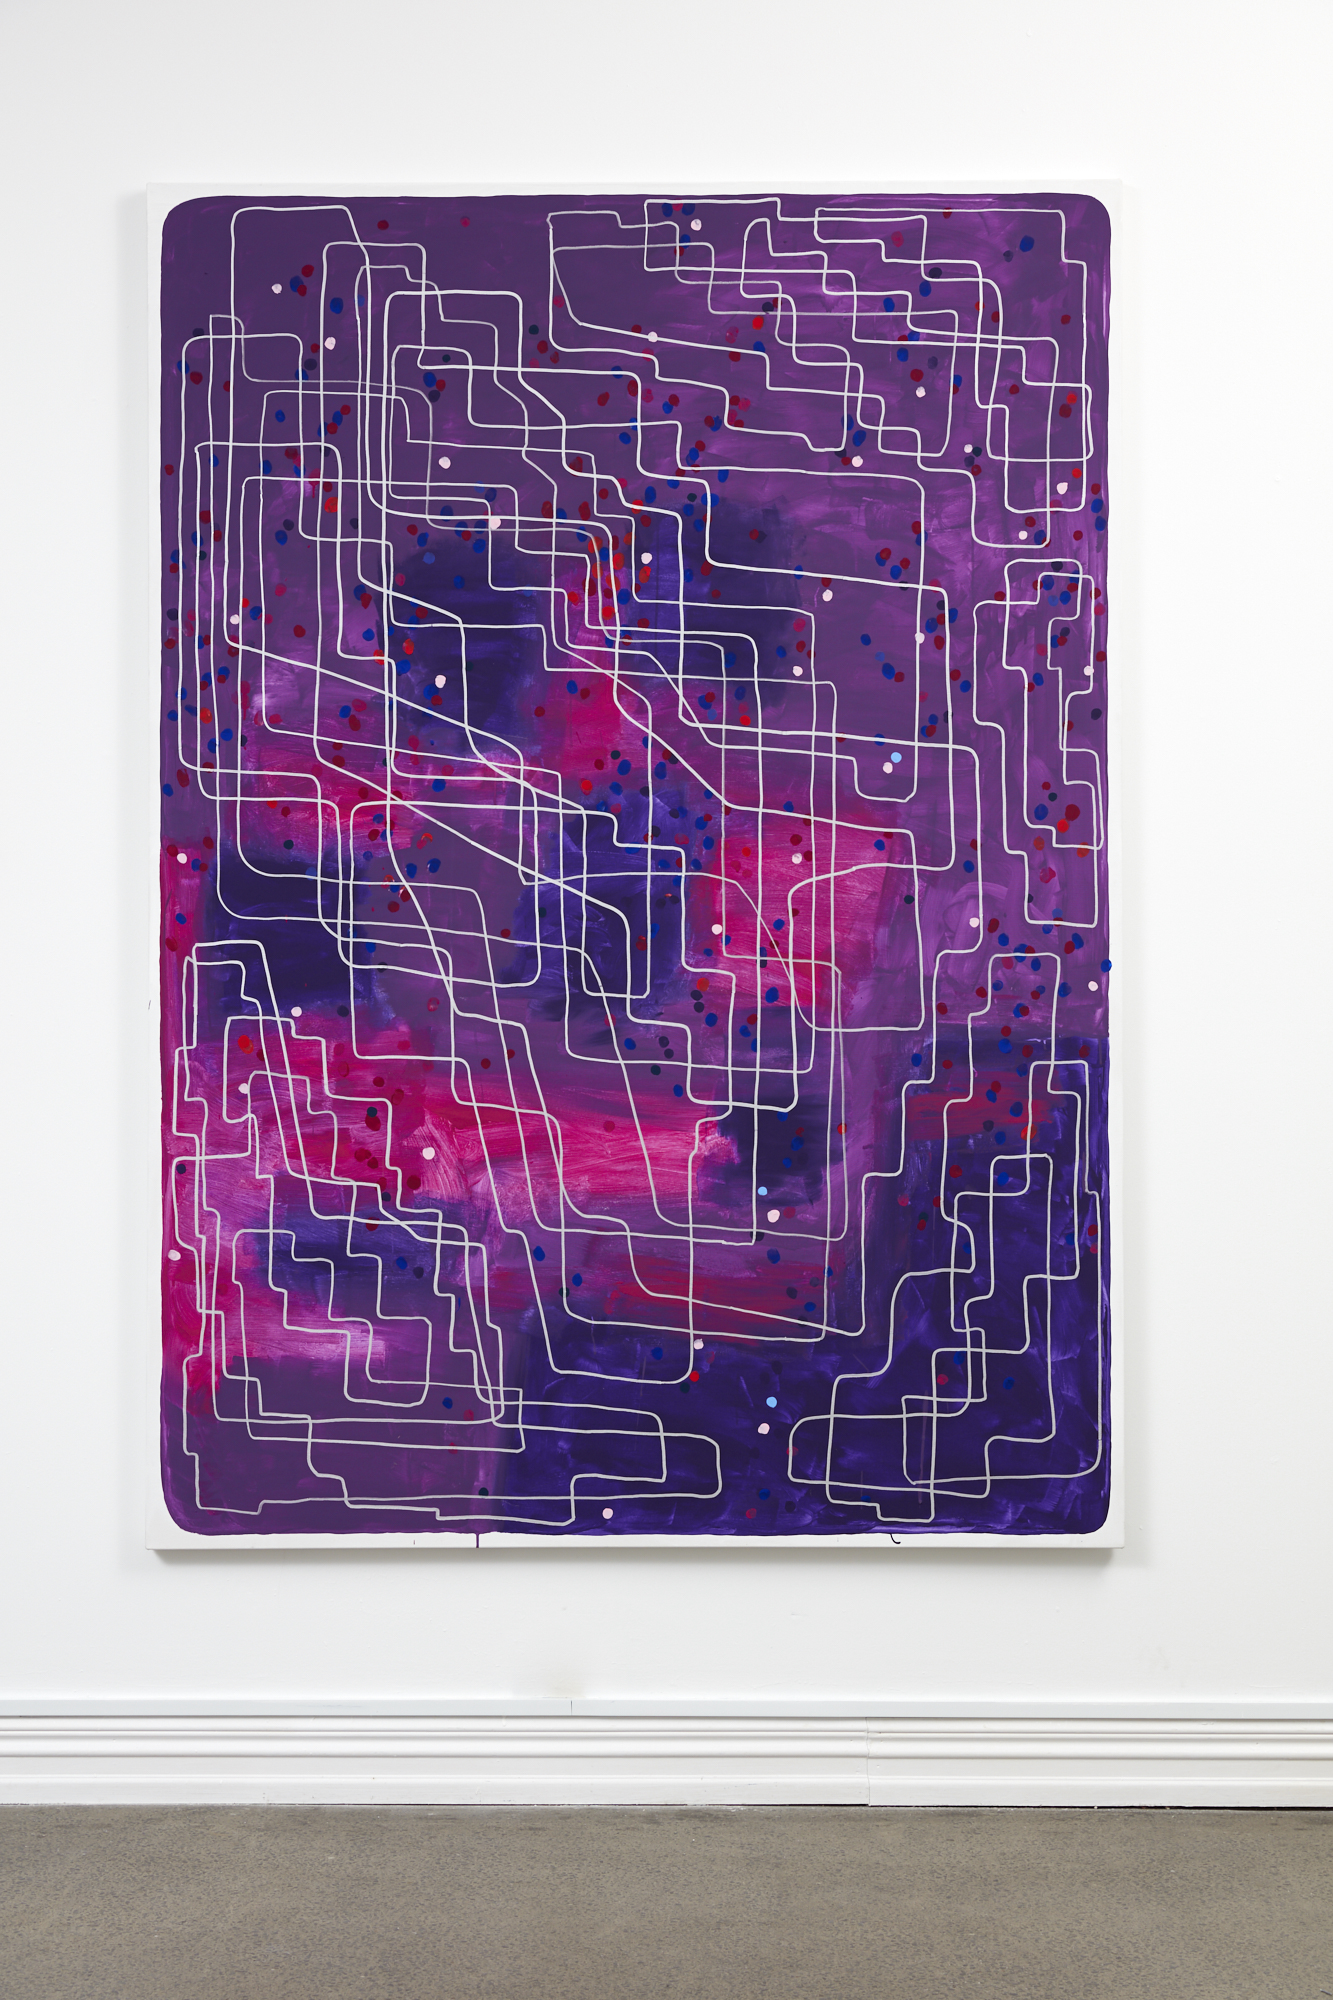 John Reynolds,  Headmap Footage #1 , oil paint marker and acrylic on canvas, 2130 x 1570 mm